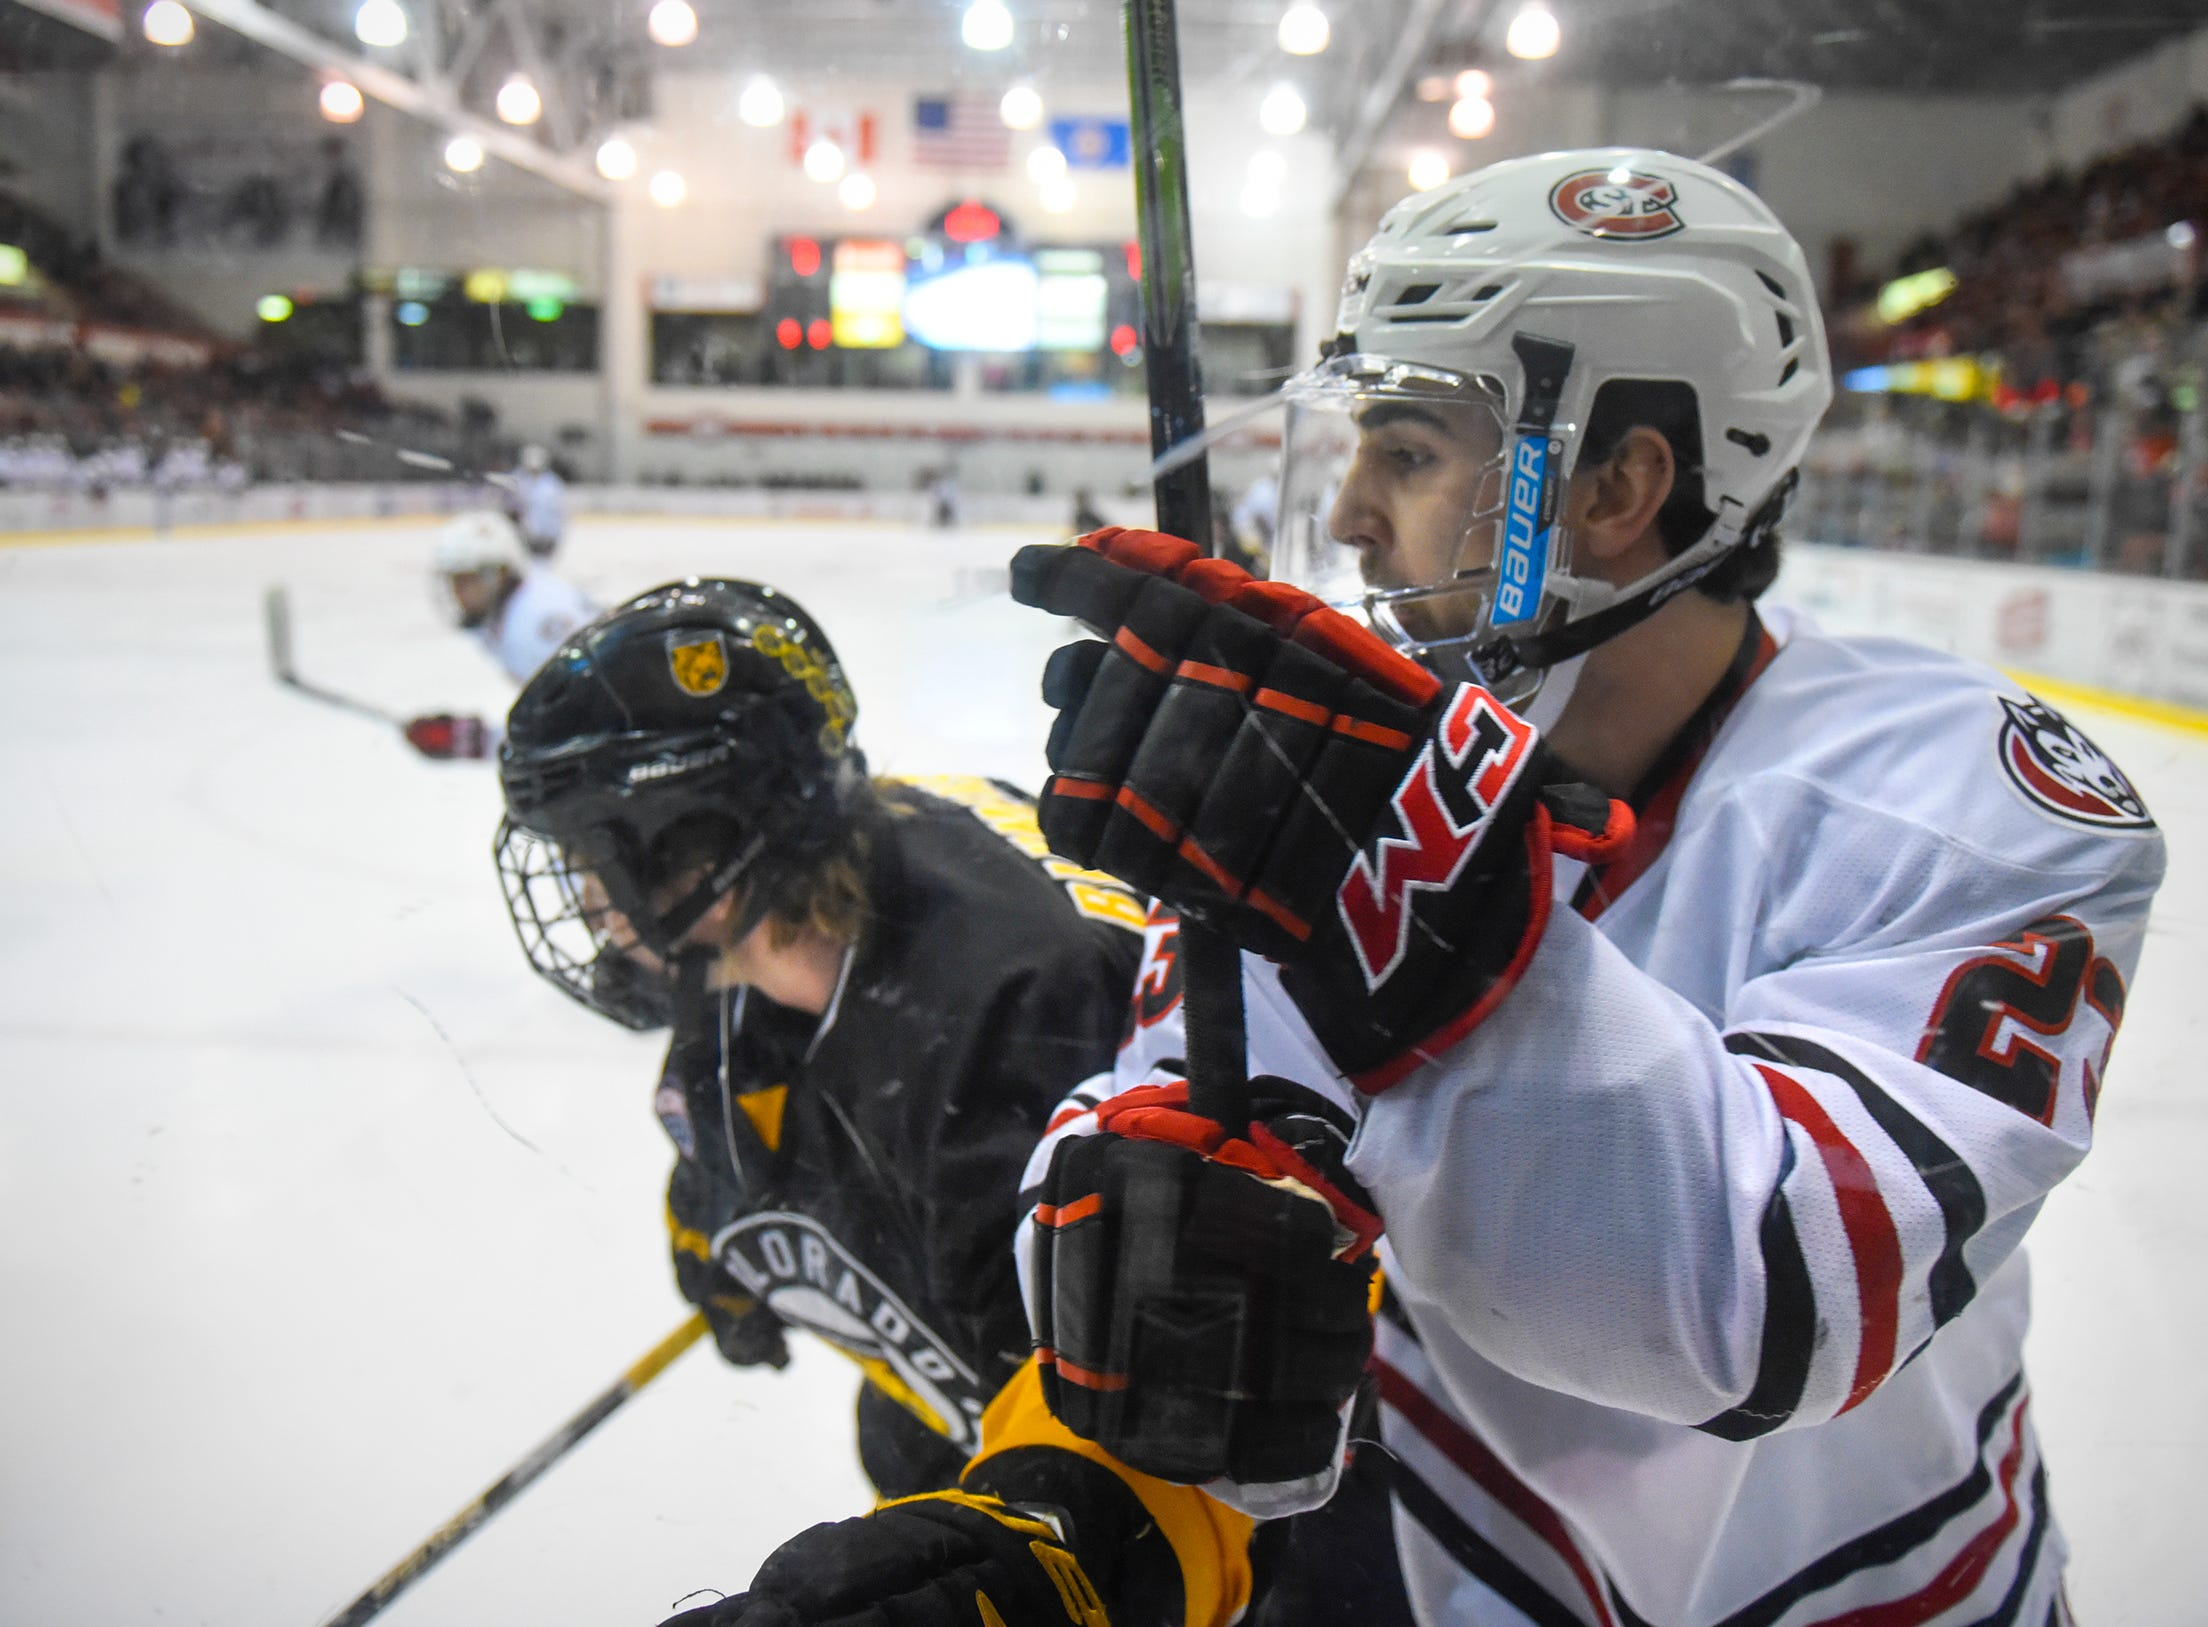 St. Cloud State's Robby Jackson works along the boards during the first period of the Saturday, Feb. 9, game at the Herb Brooks National Hockey Center in St. Cloud.